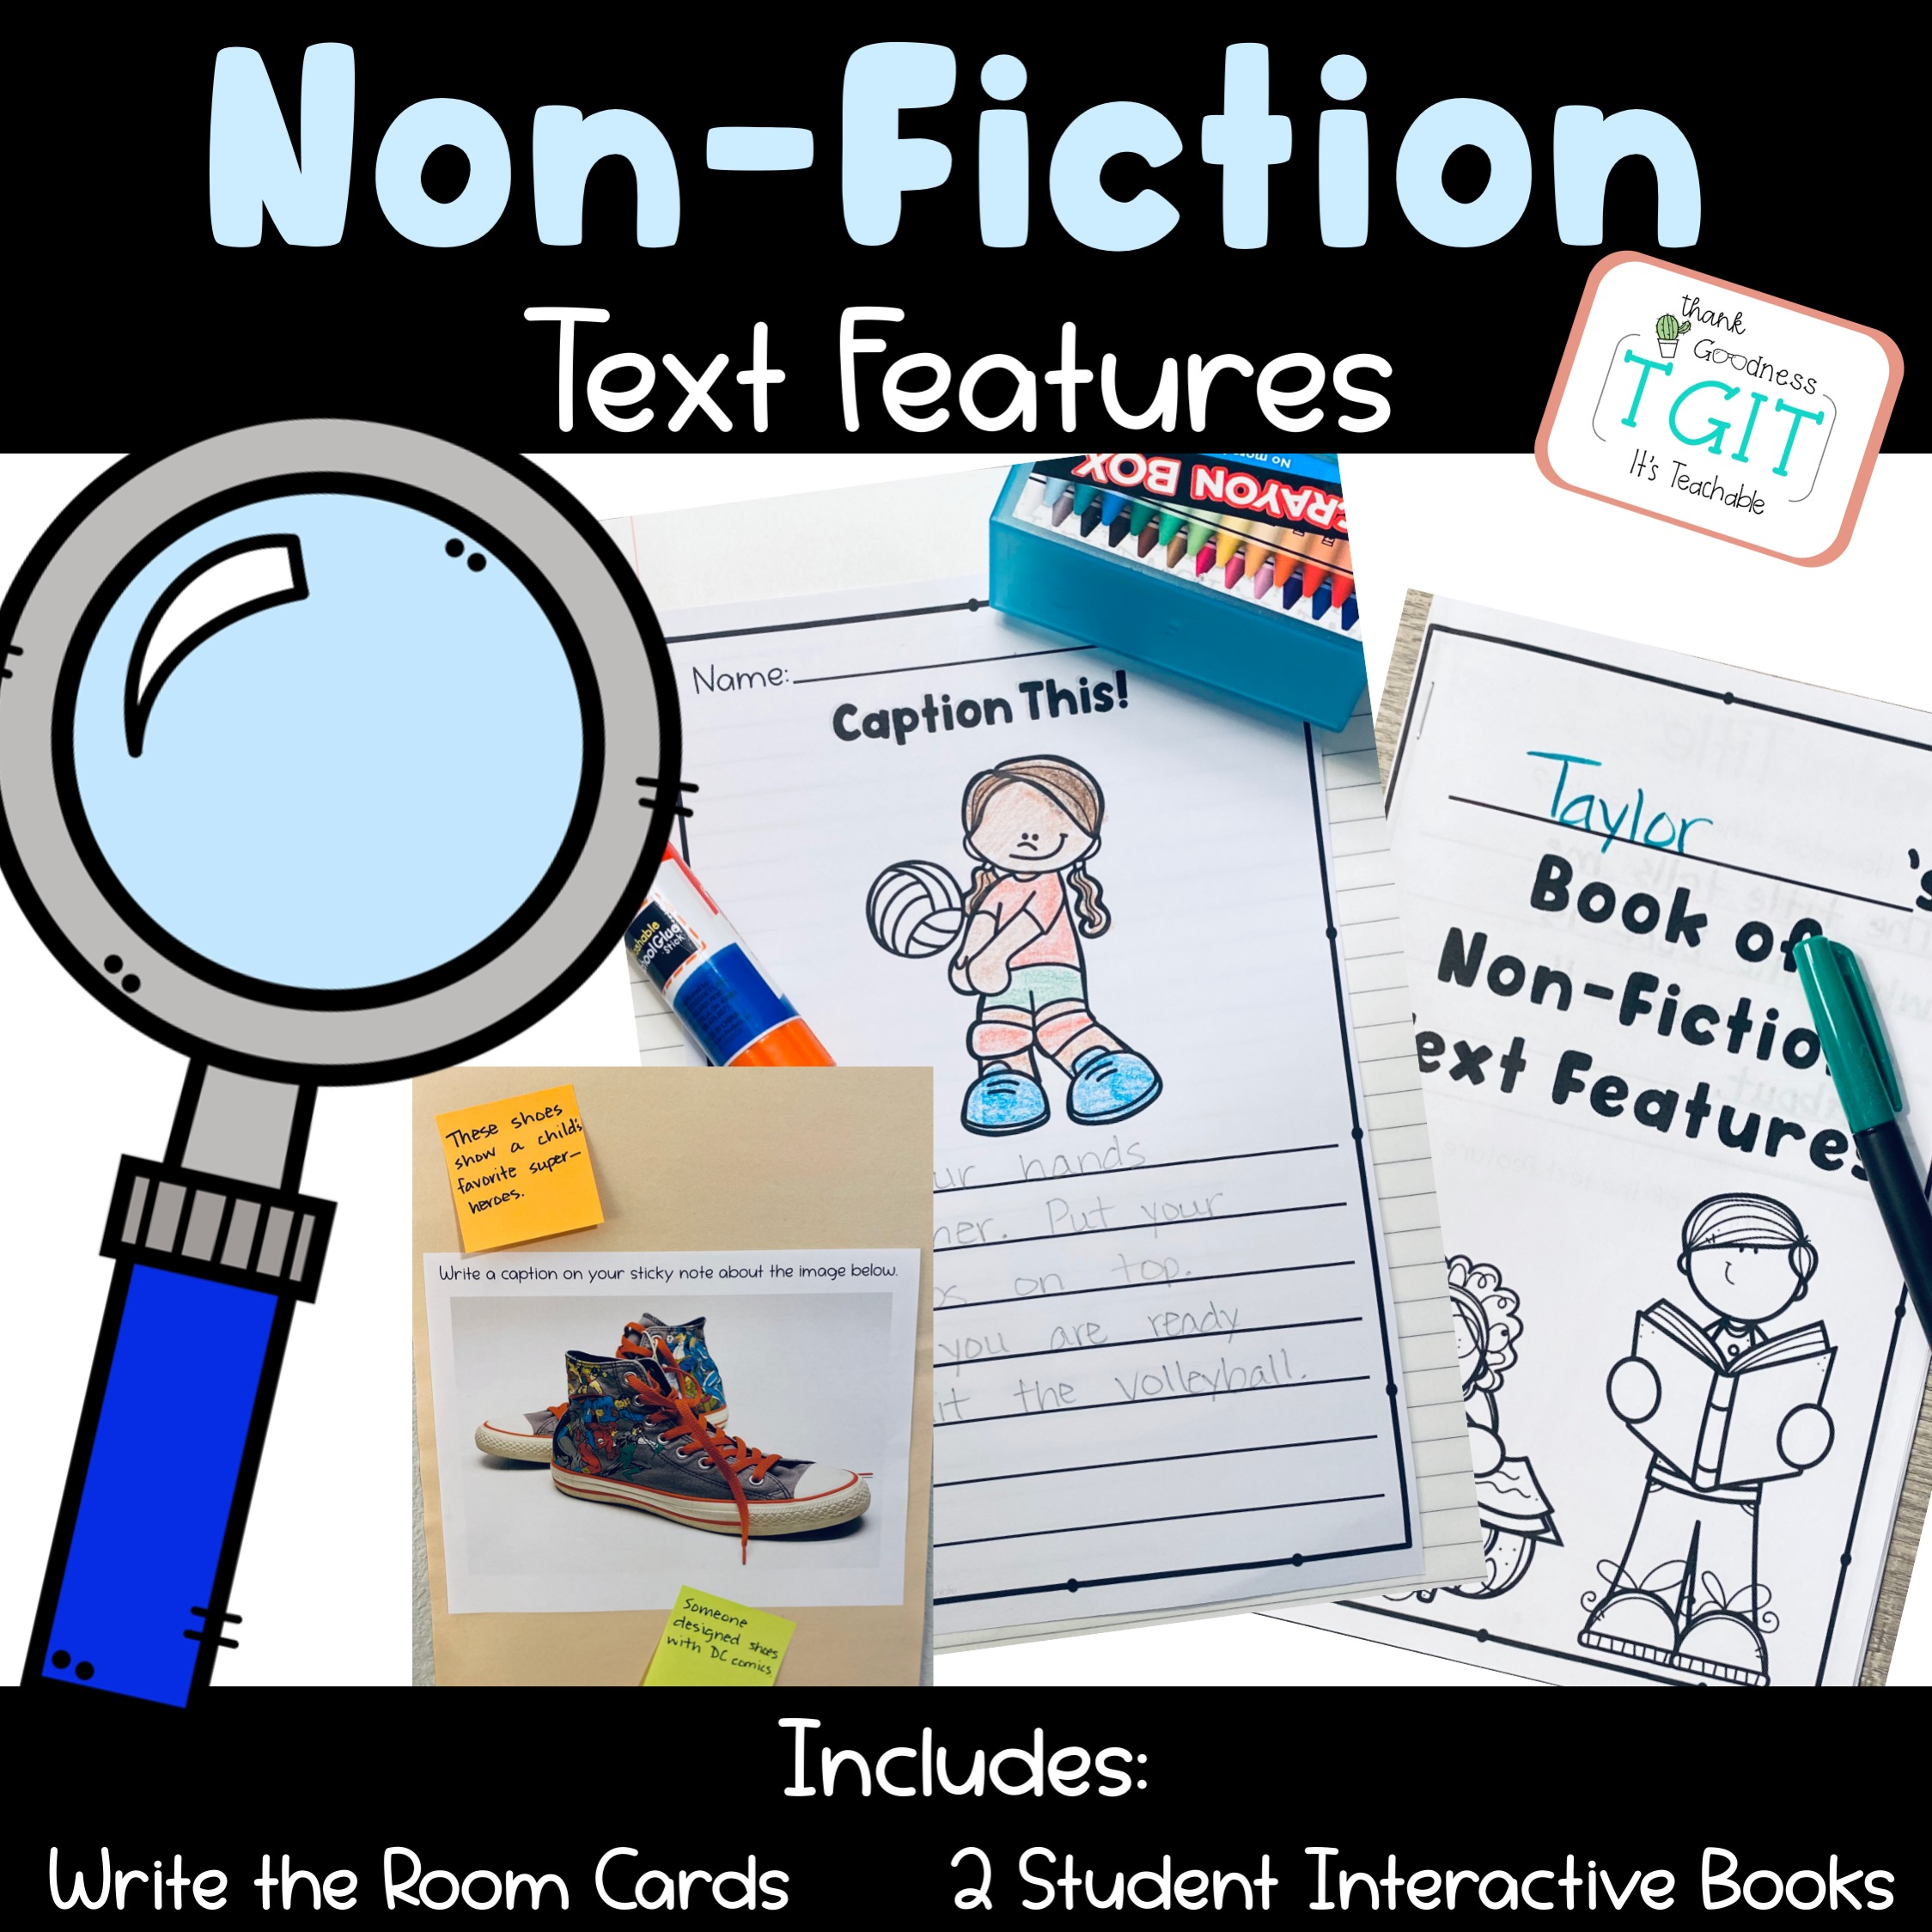 Printable Activity for Non-Fiction Text Features